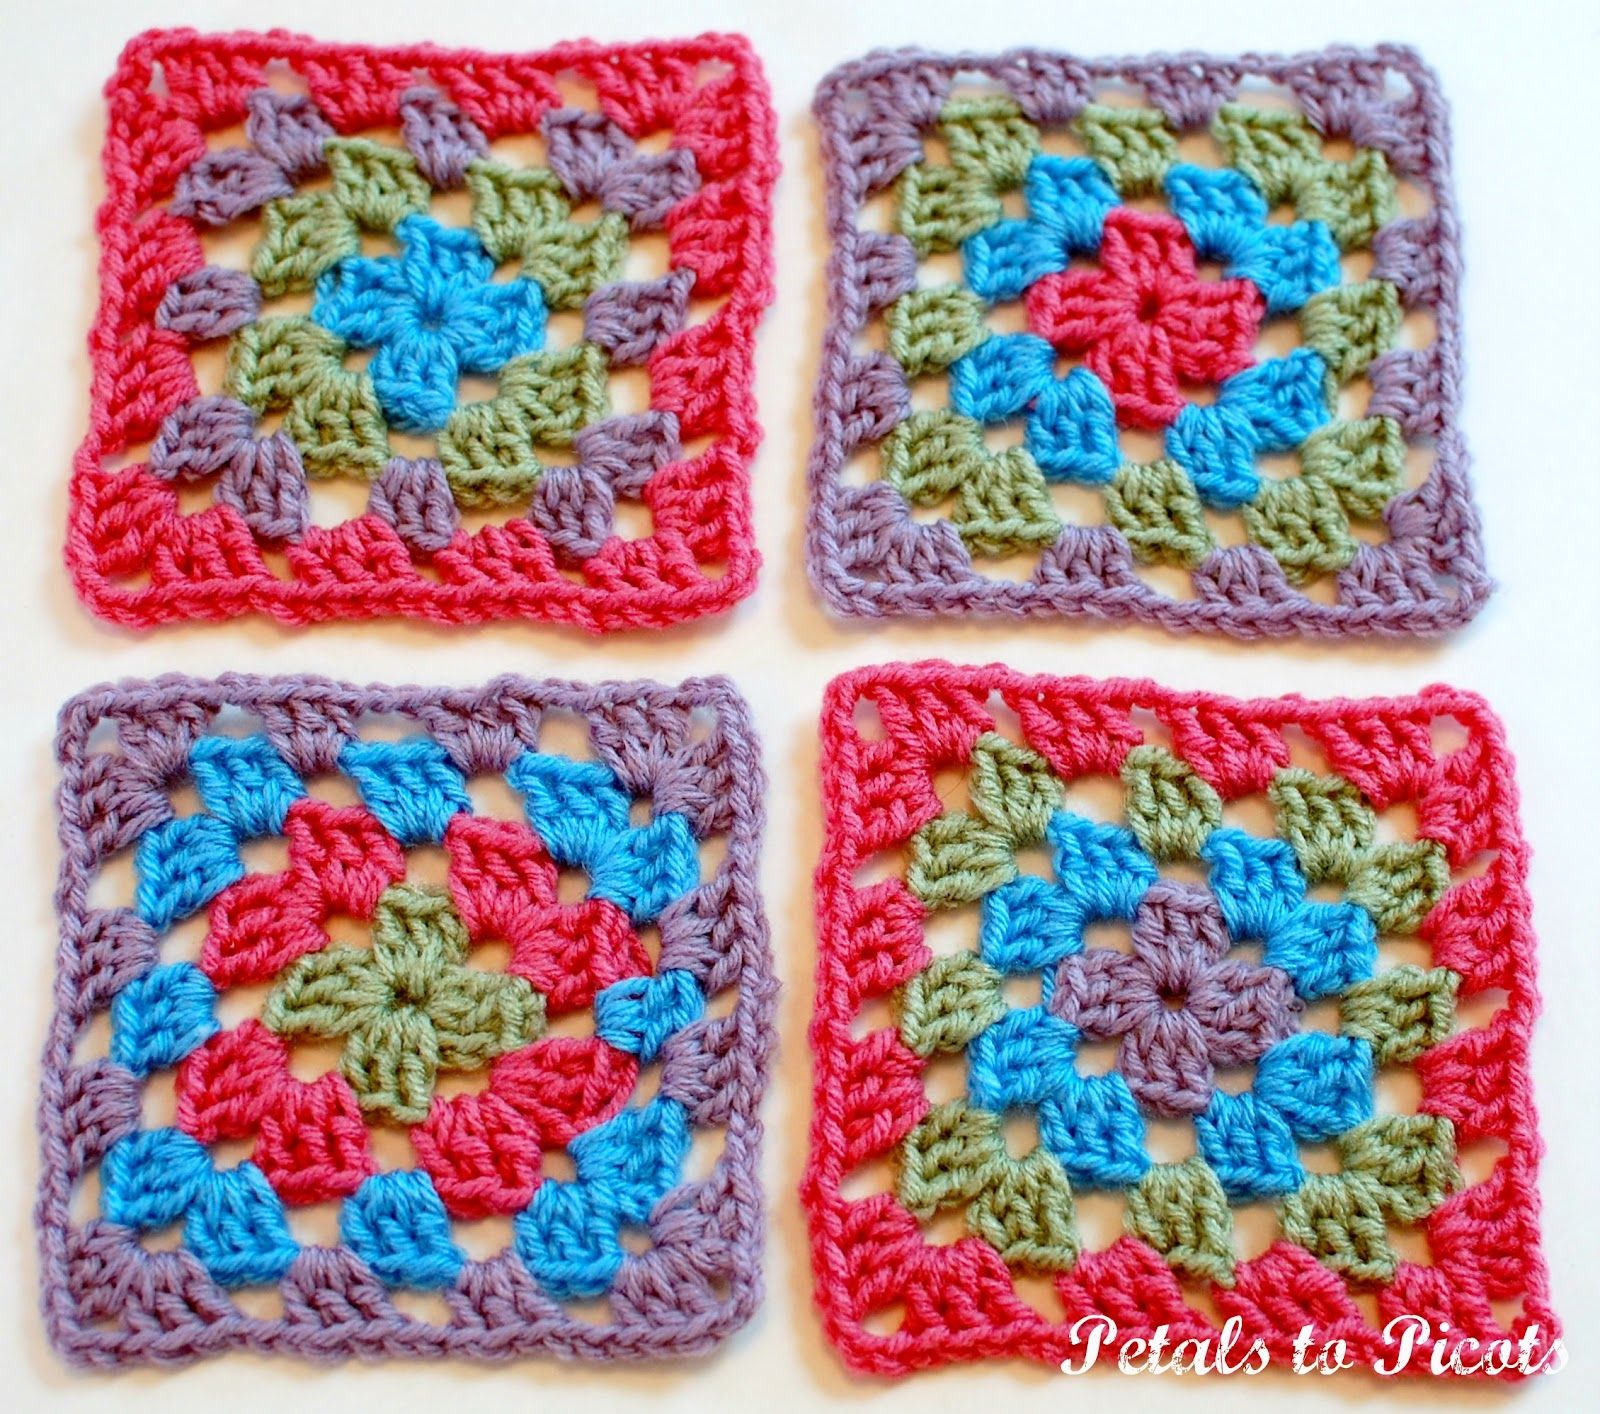 How to crochet a classic granny square granny square pattern how to crochet a classic granny square granny square pattern petals to picots bankloansurffo Image collections